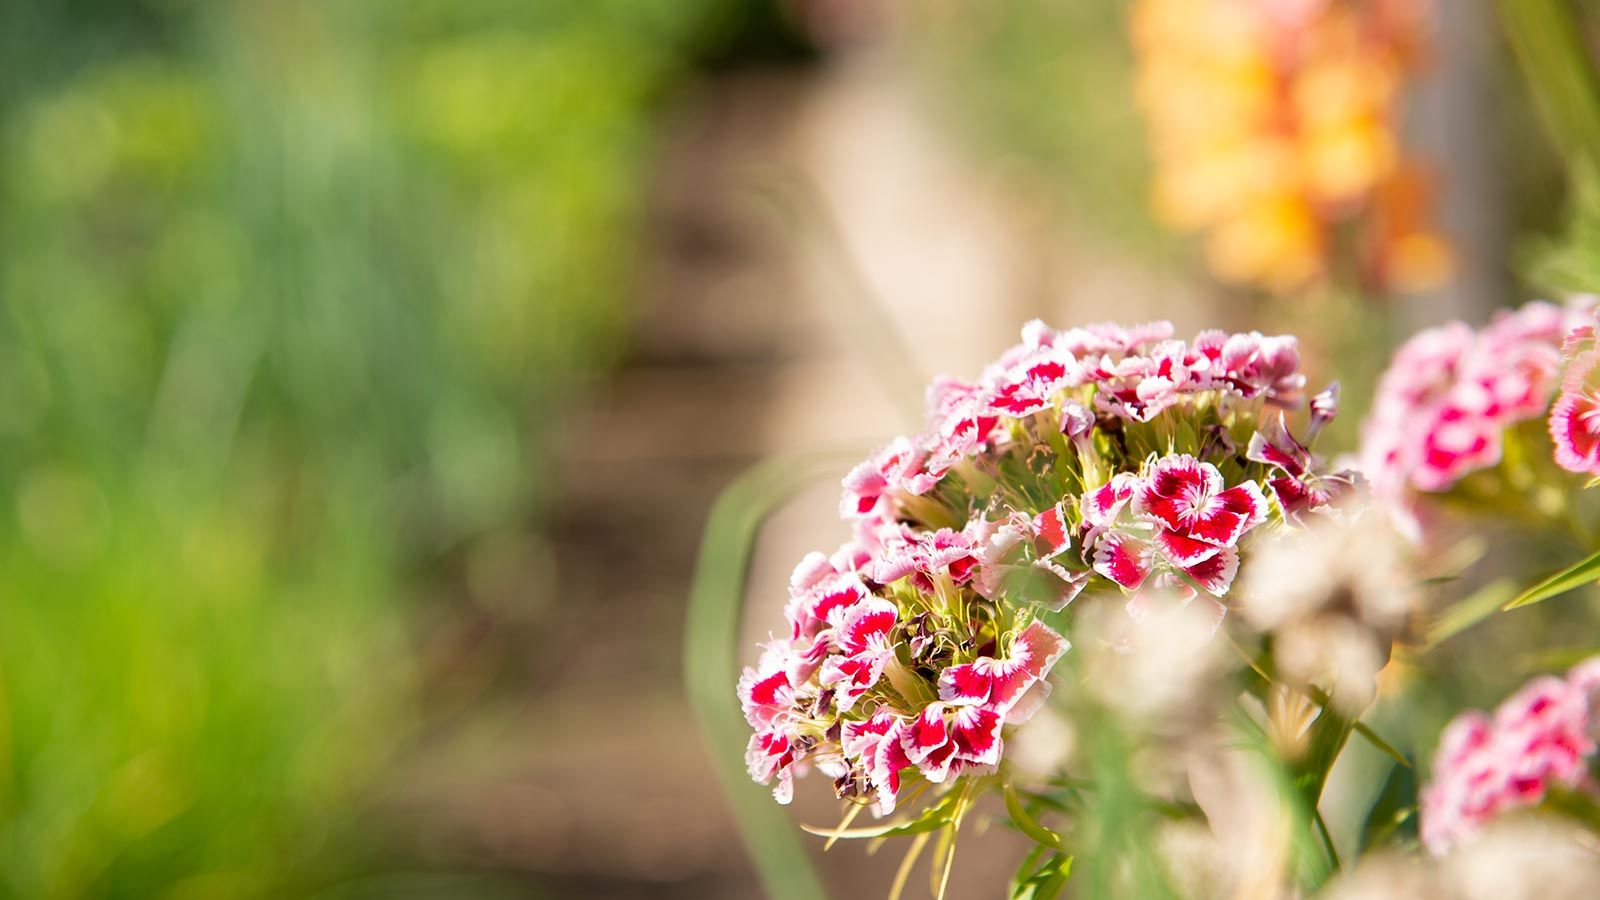 Detailed view of some red and white flowers